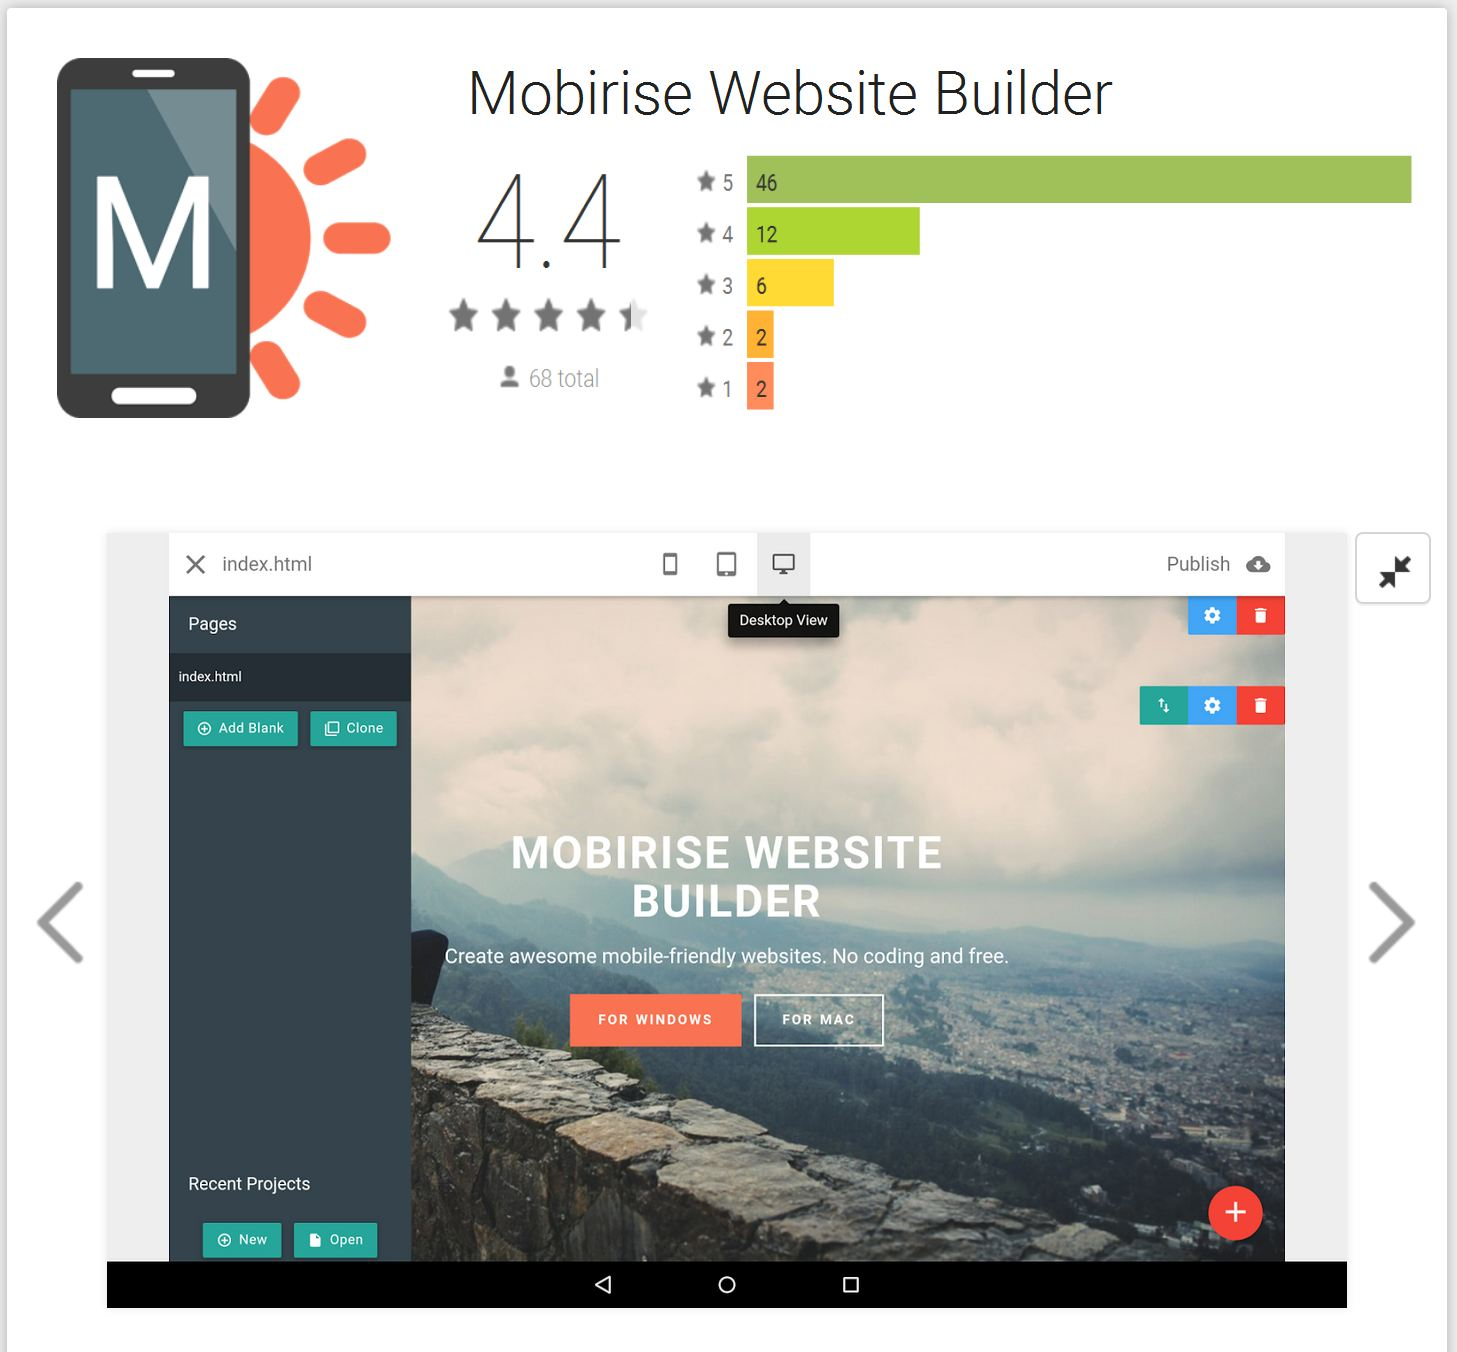 mobirise free website builder software entire tips page